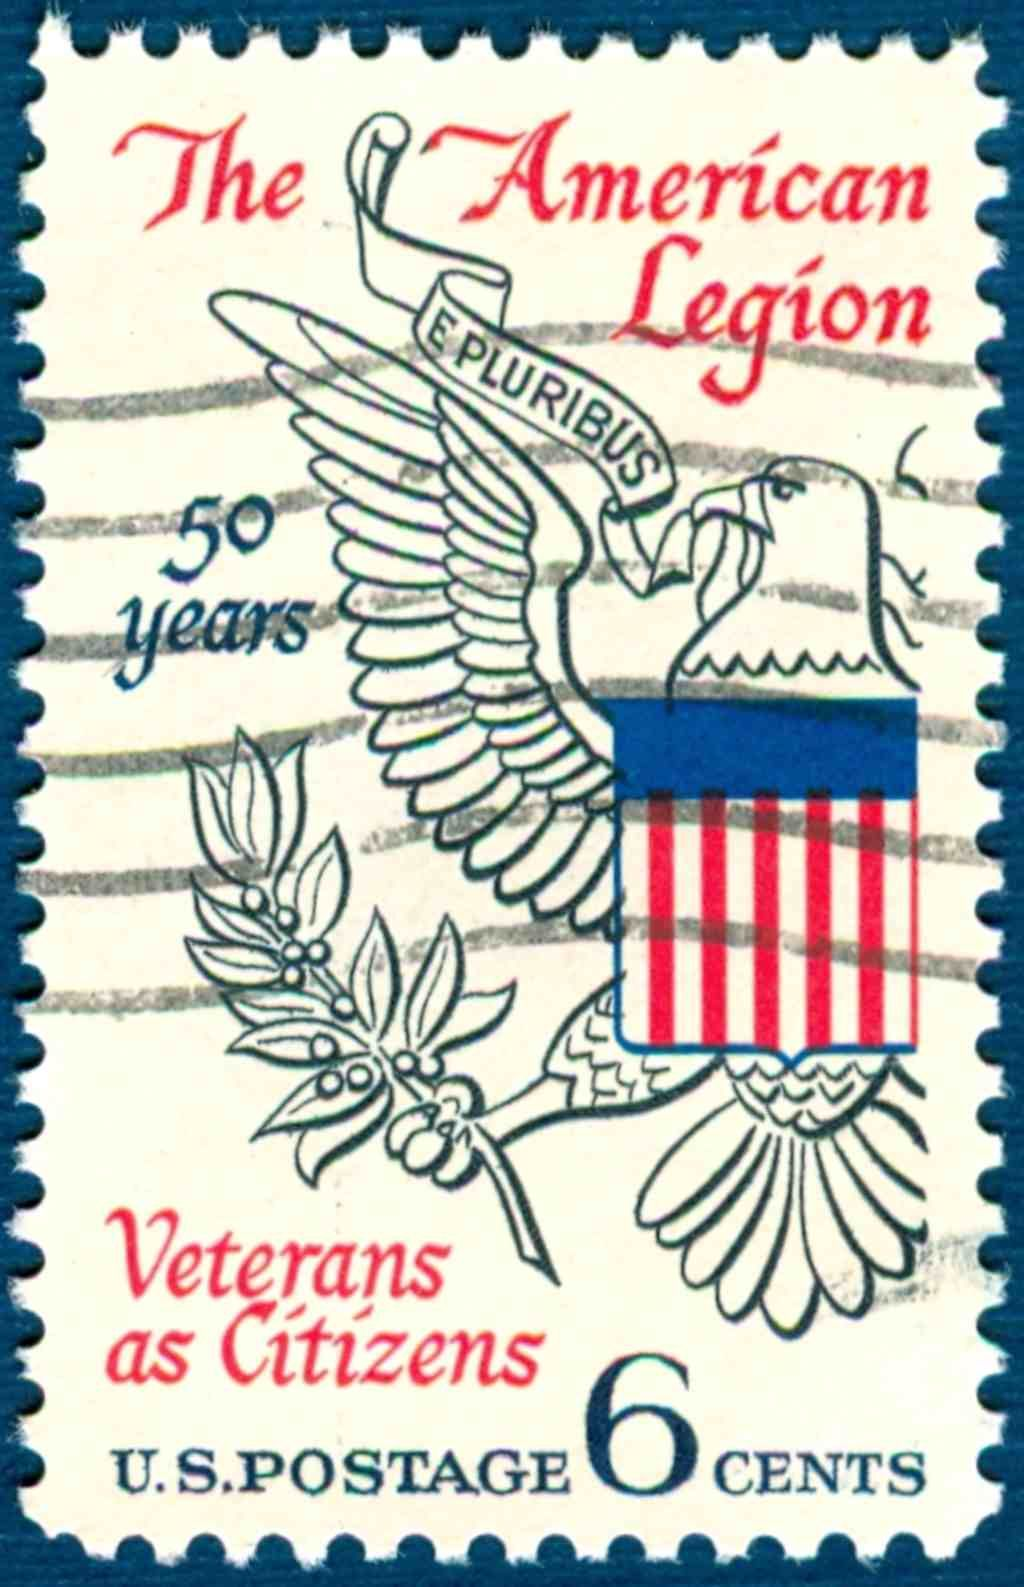 Honoring Military Service Stamp Community Forum (With